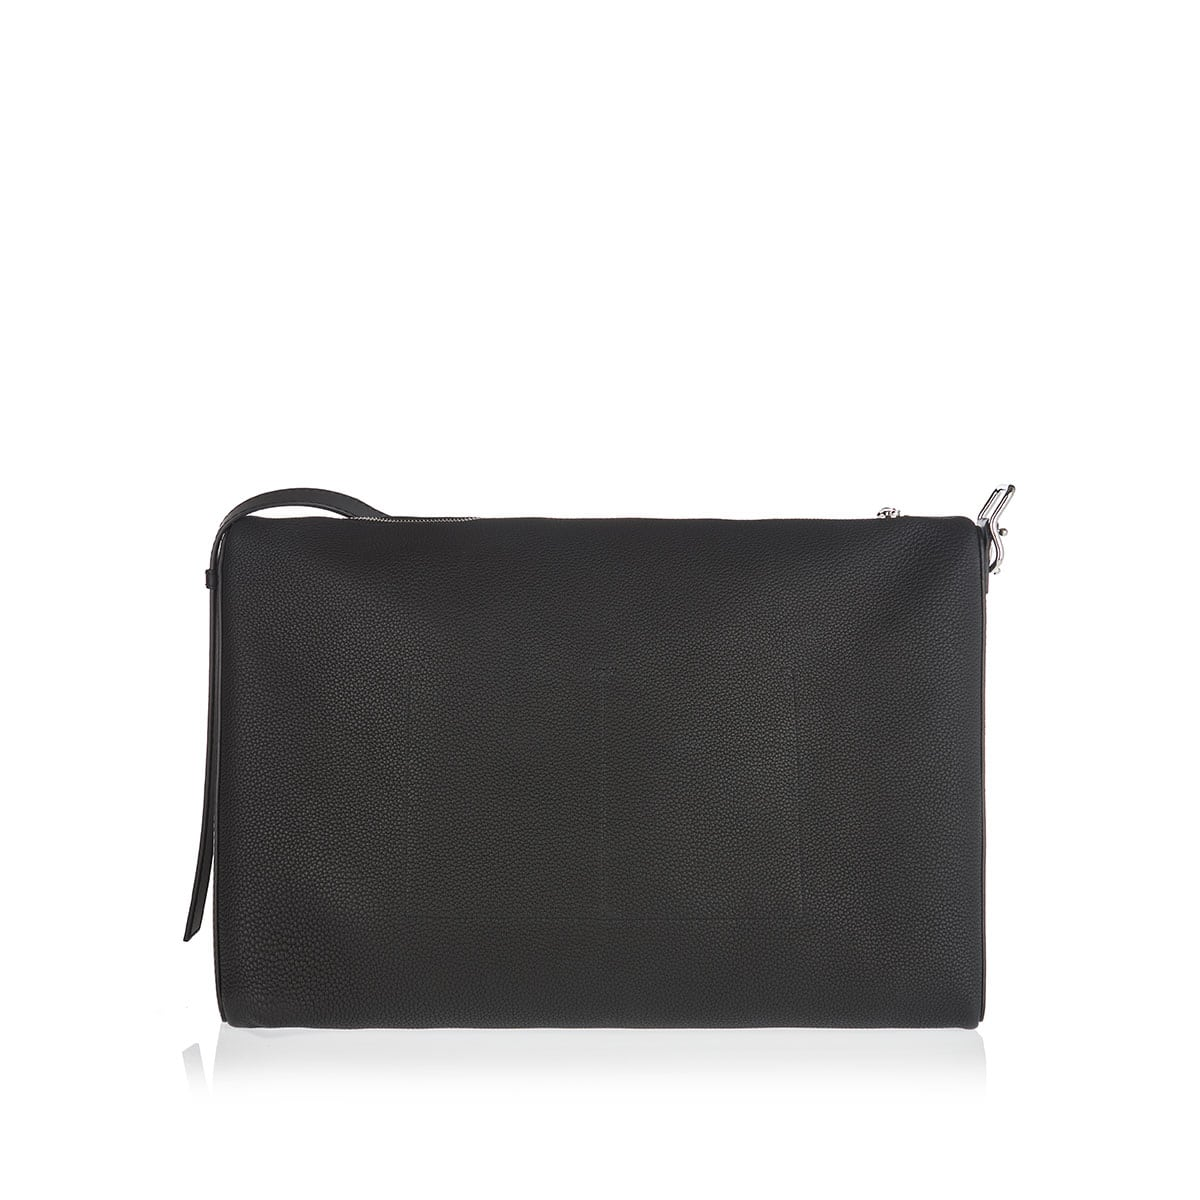 Berlingo large crossbody bag